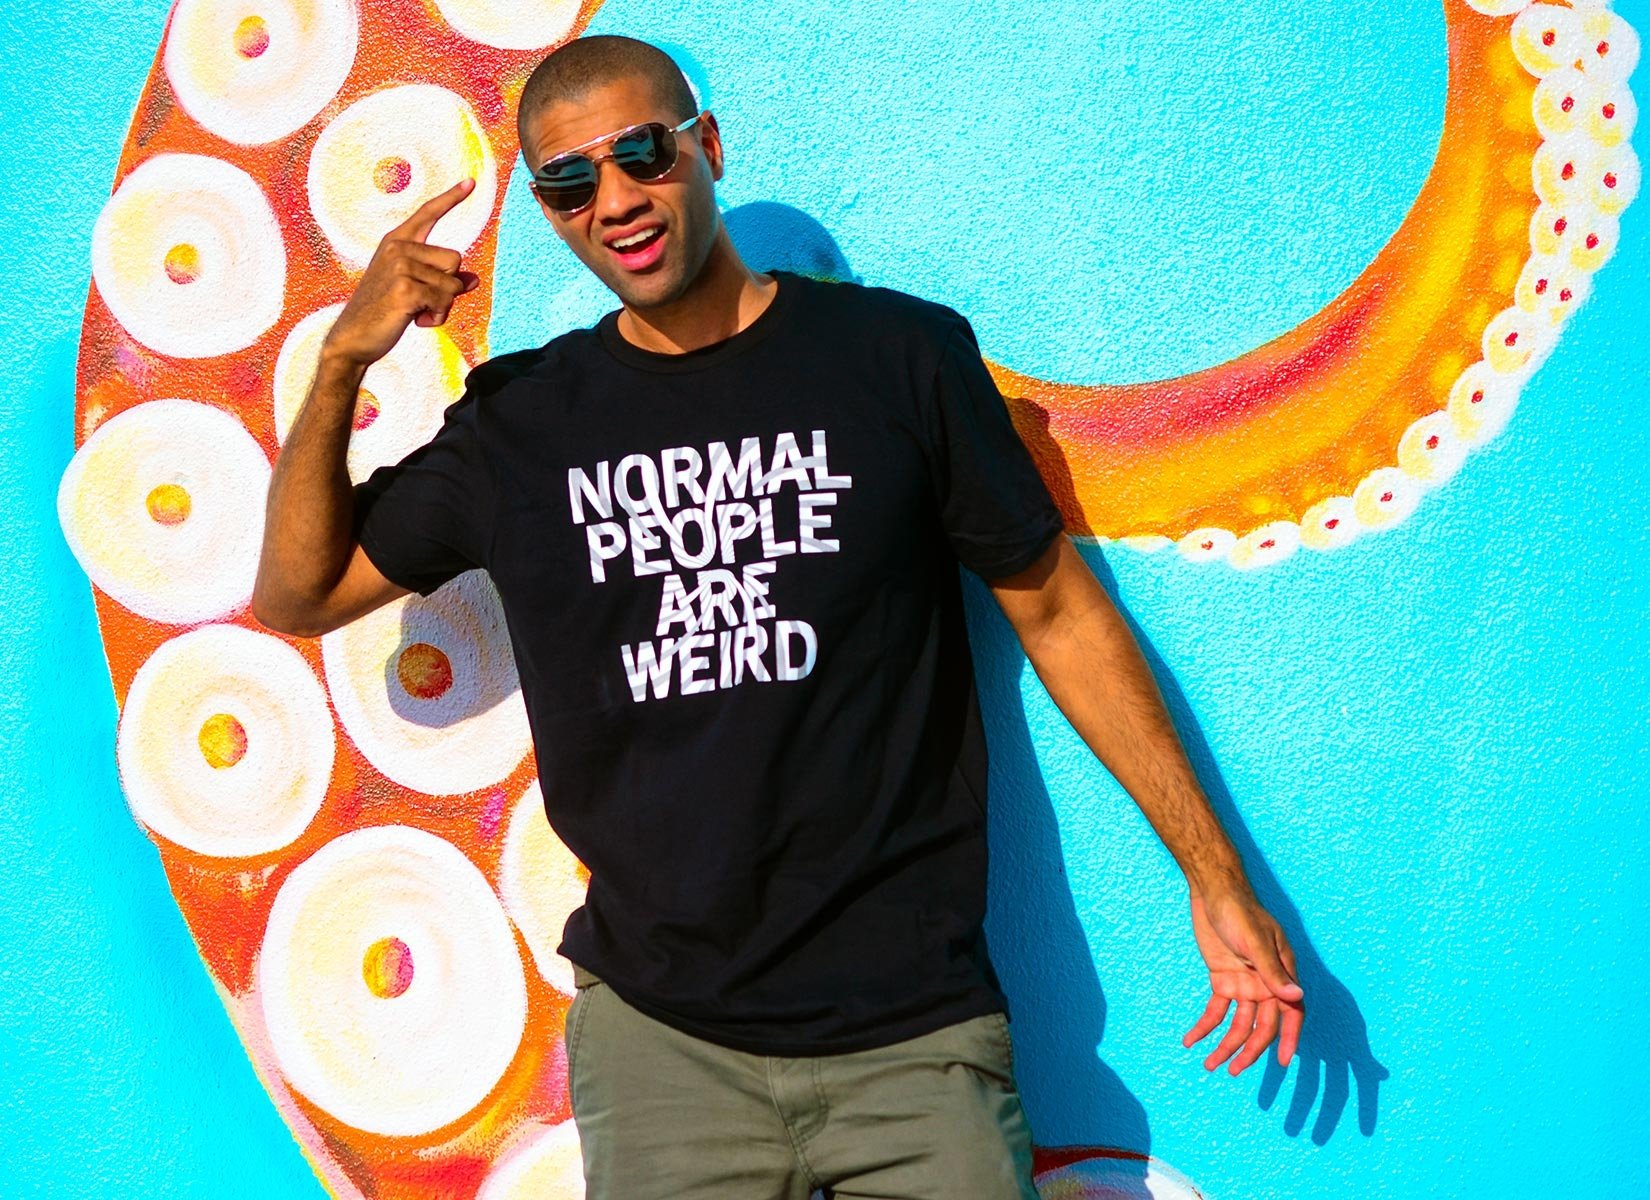 Normal People Are Weird